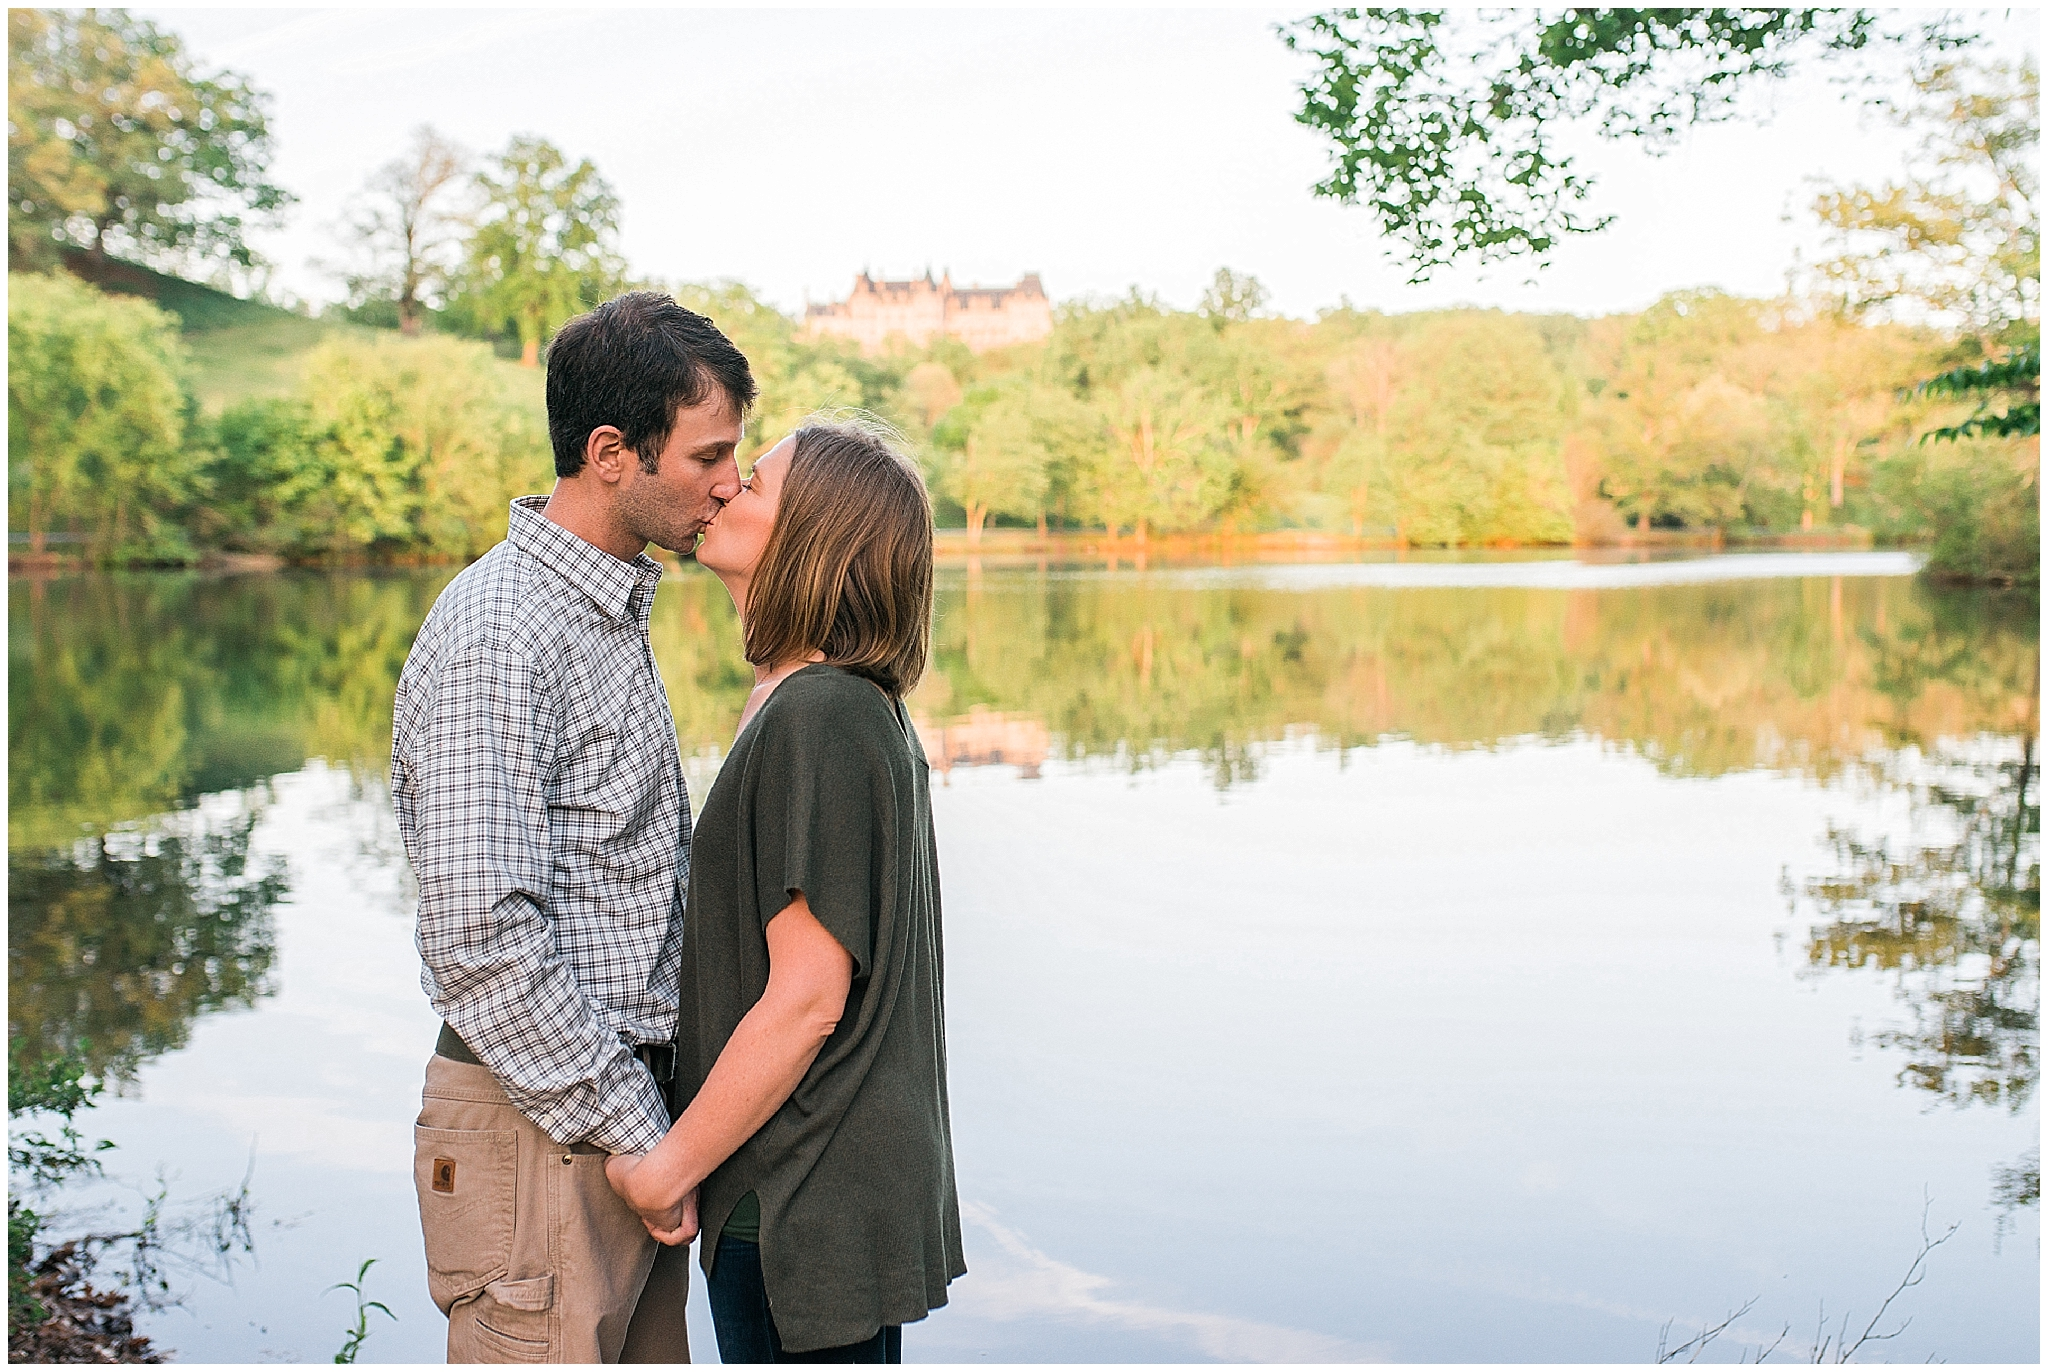 Biltmore_engagement_Asheville_photographer_wedding_13.jpg